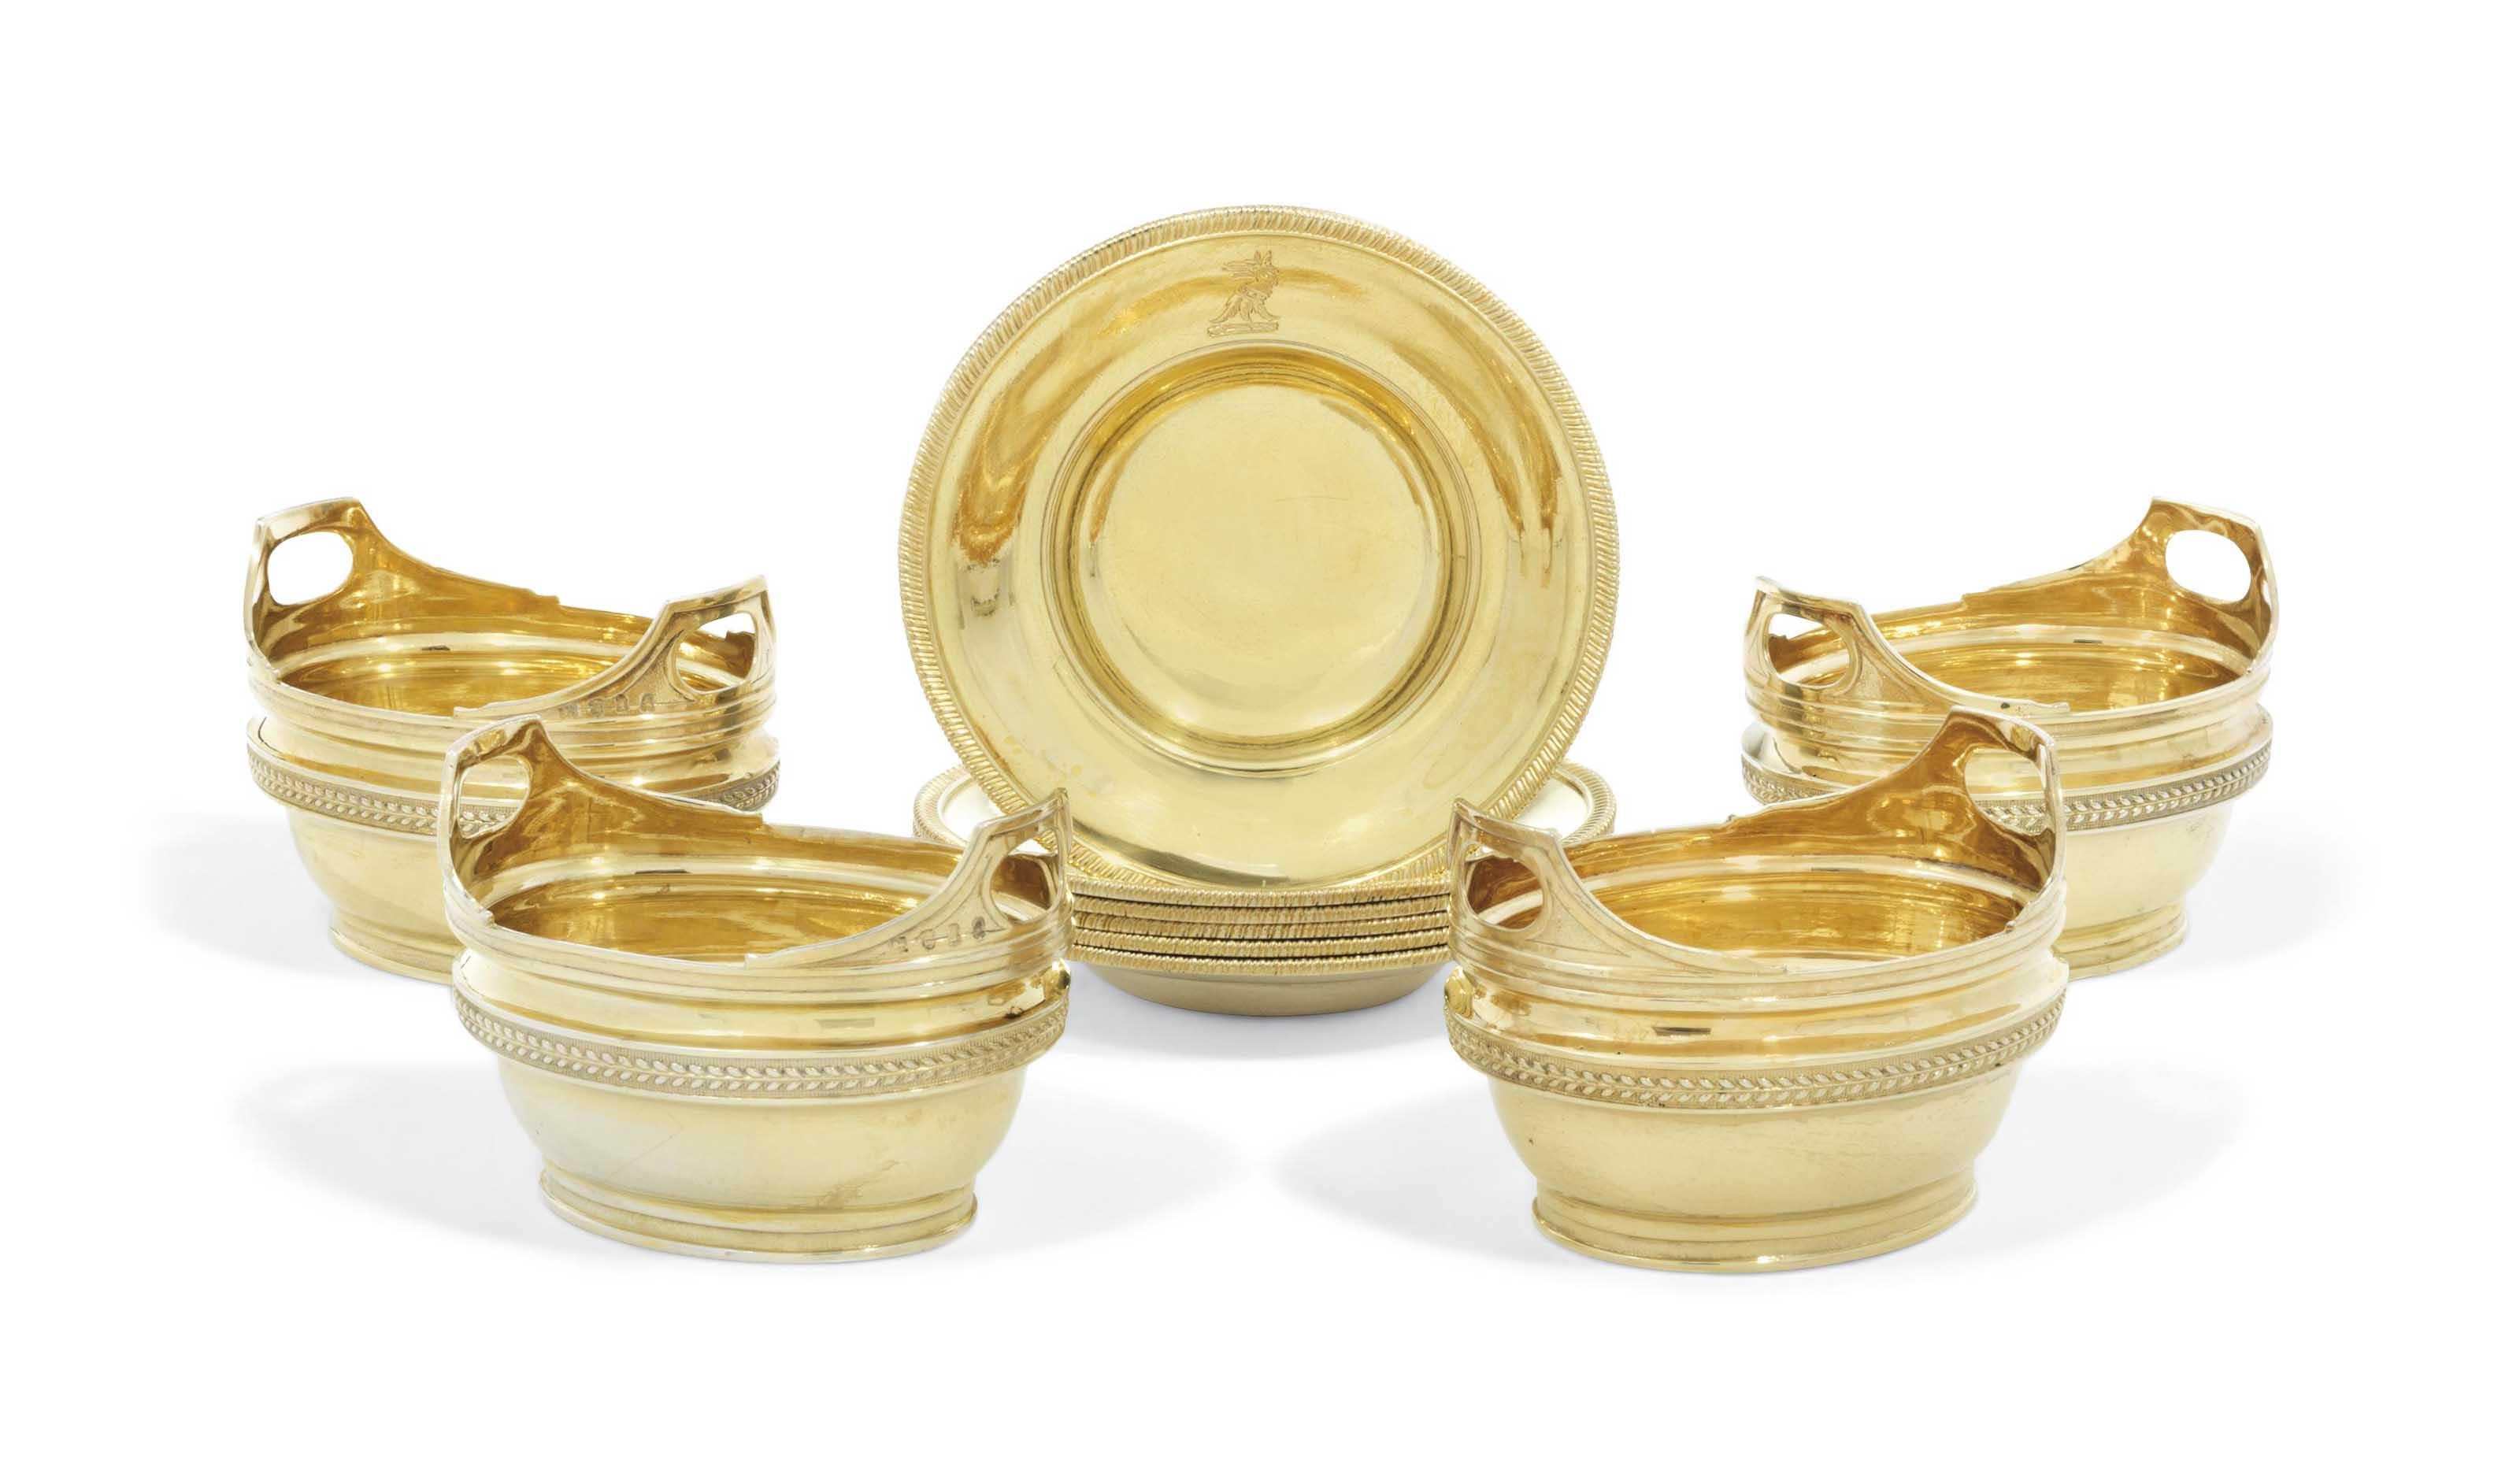 A SET OF FOUR GEORGE III SILVER-GILT SALT CELLARS AND SIX STANDS